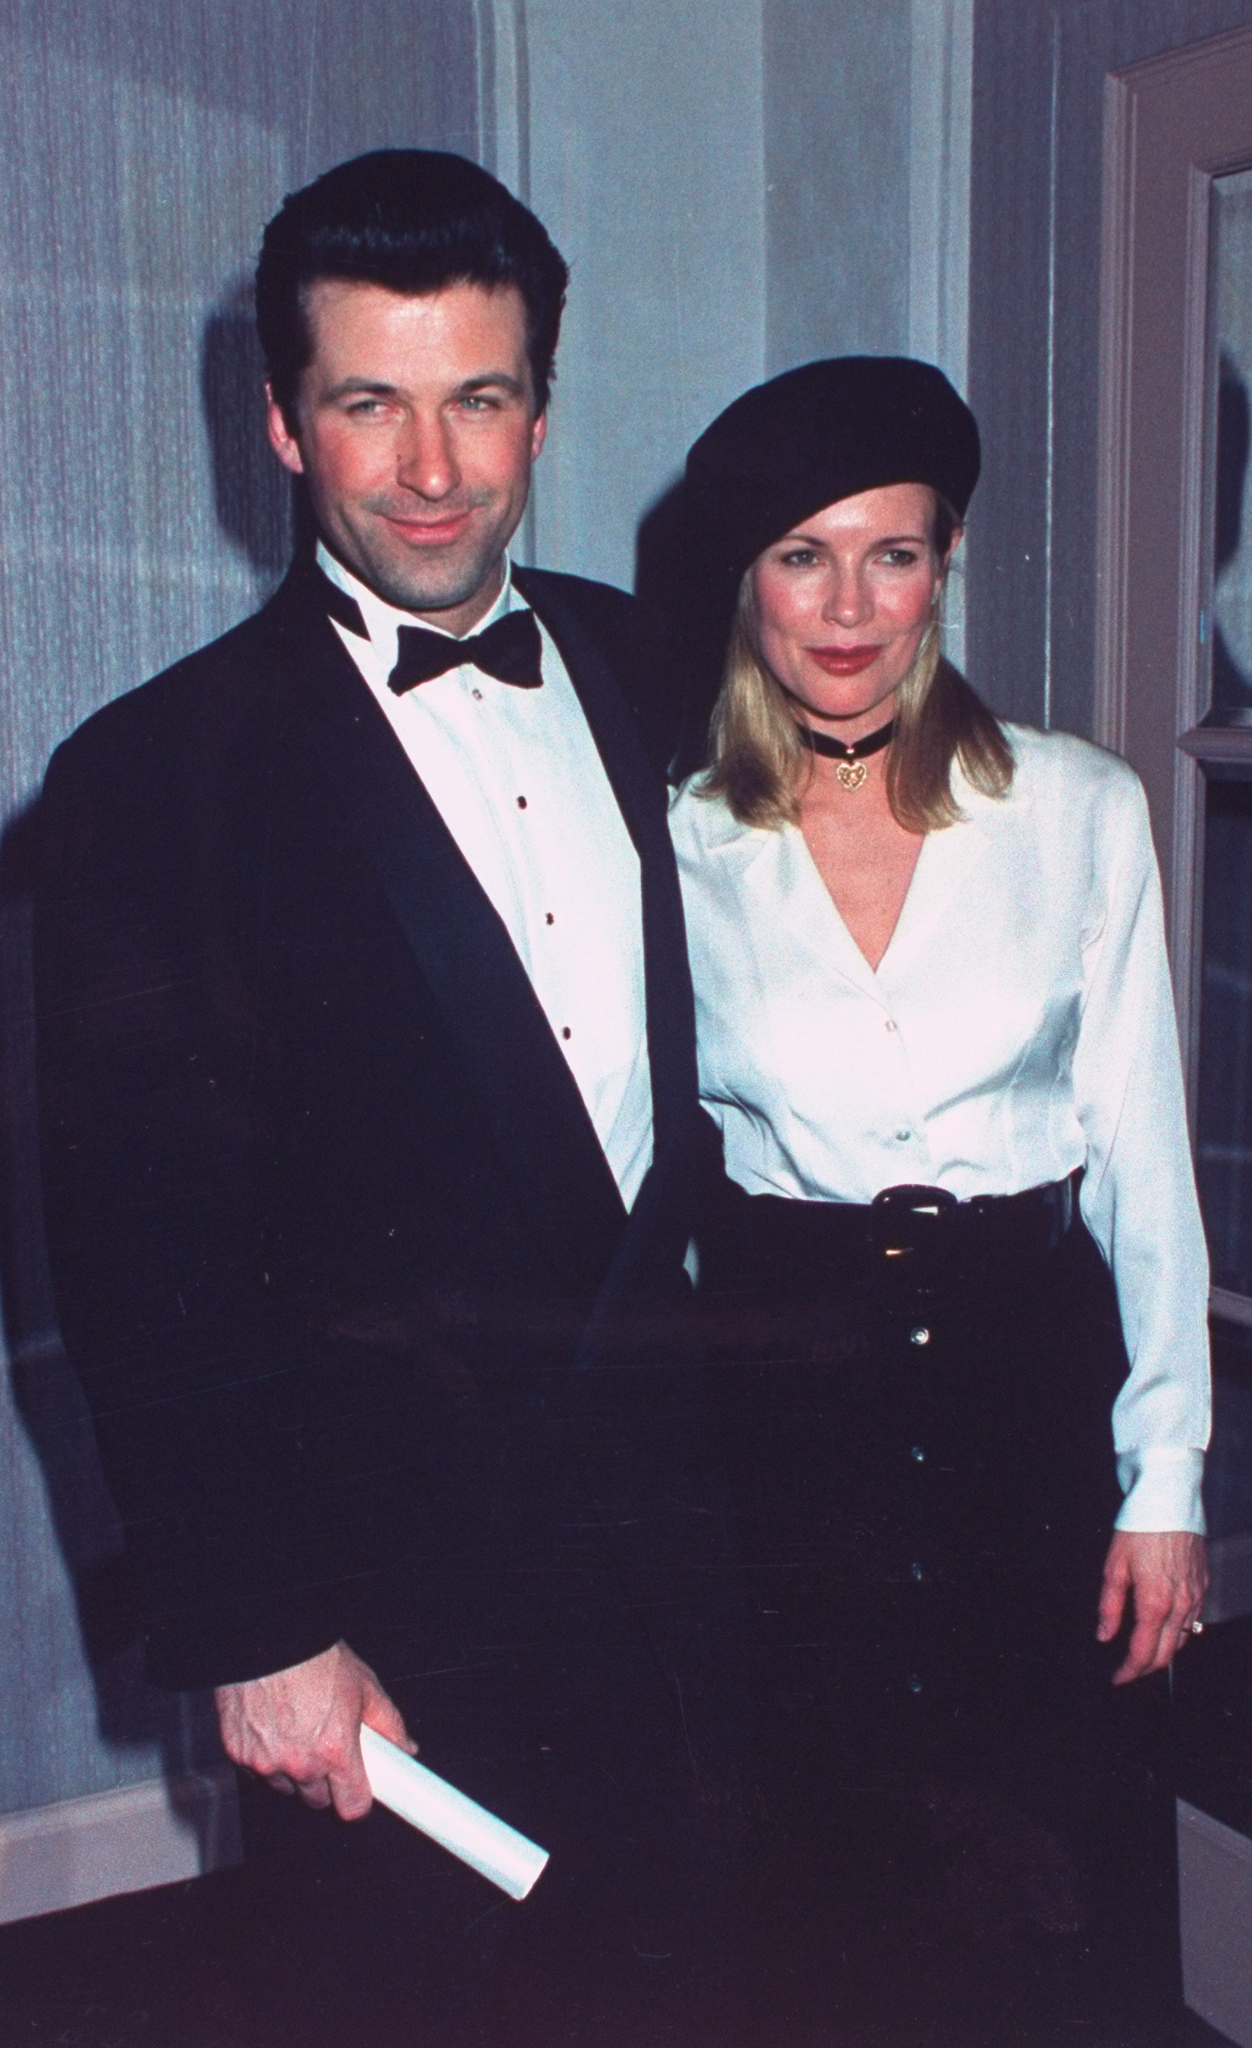 Kim Basinger during Museum of the Moving Image party in honor of actor Al Pacino on 1993-02-20